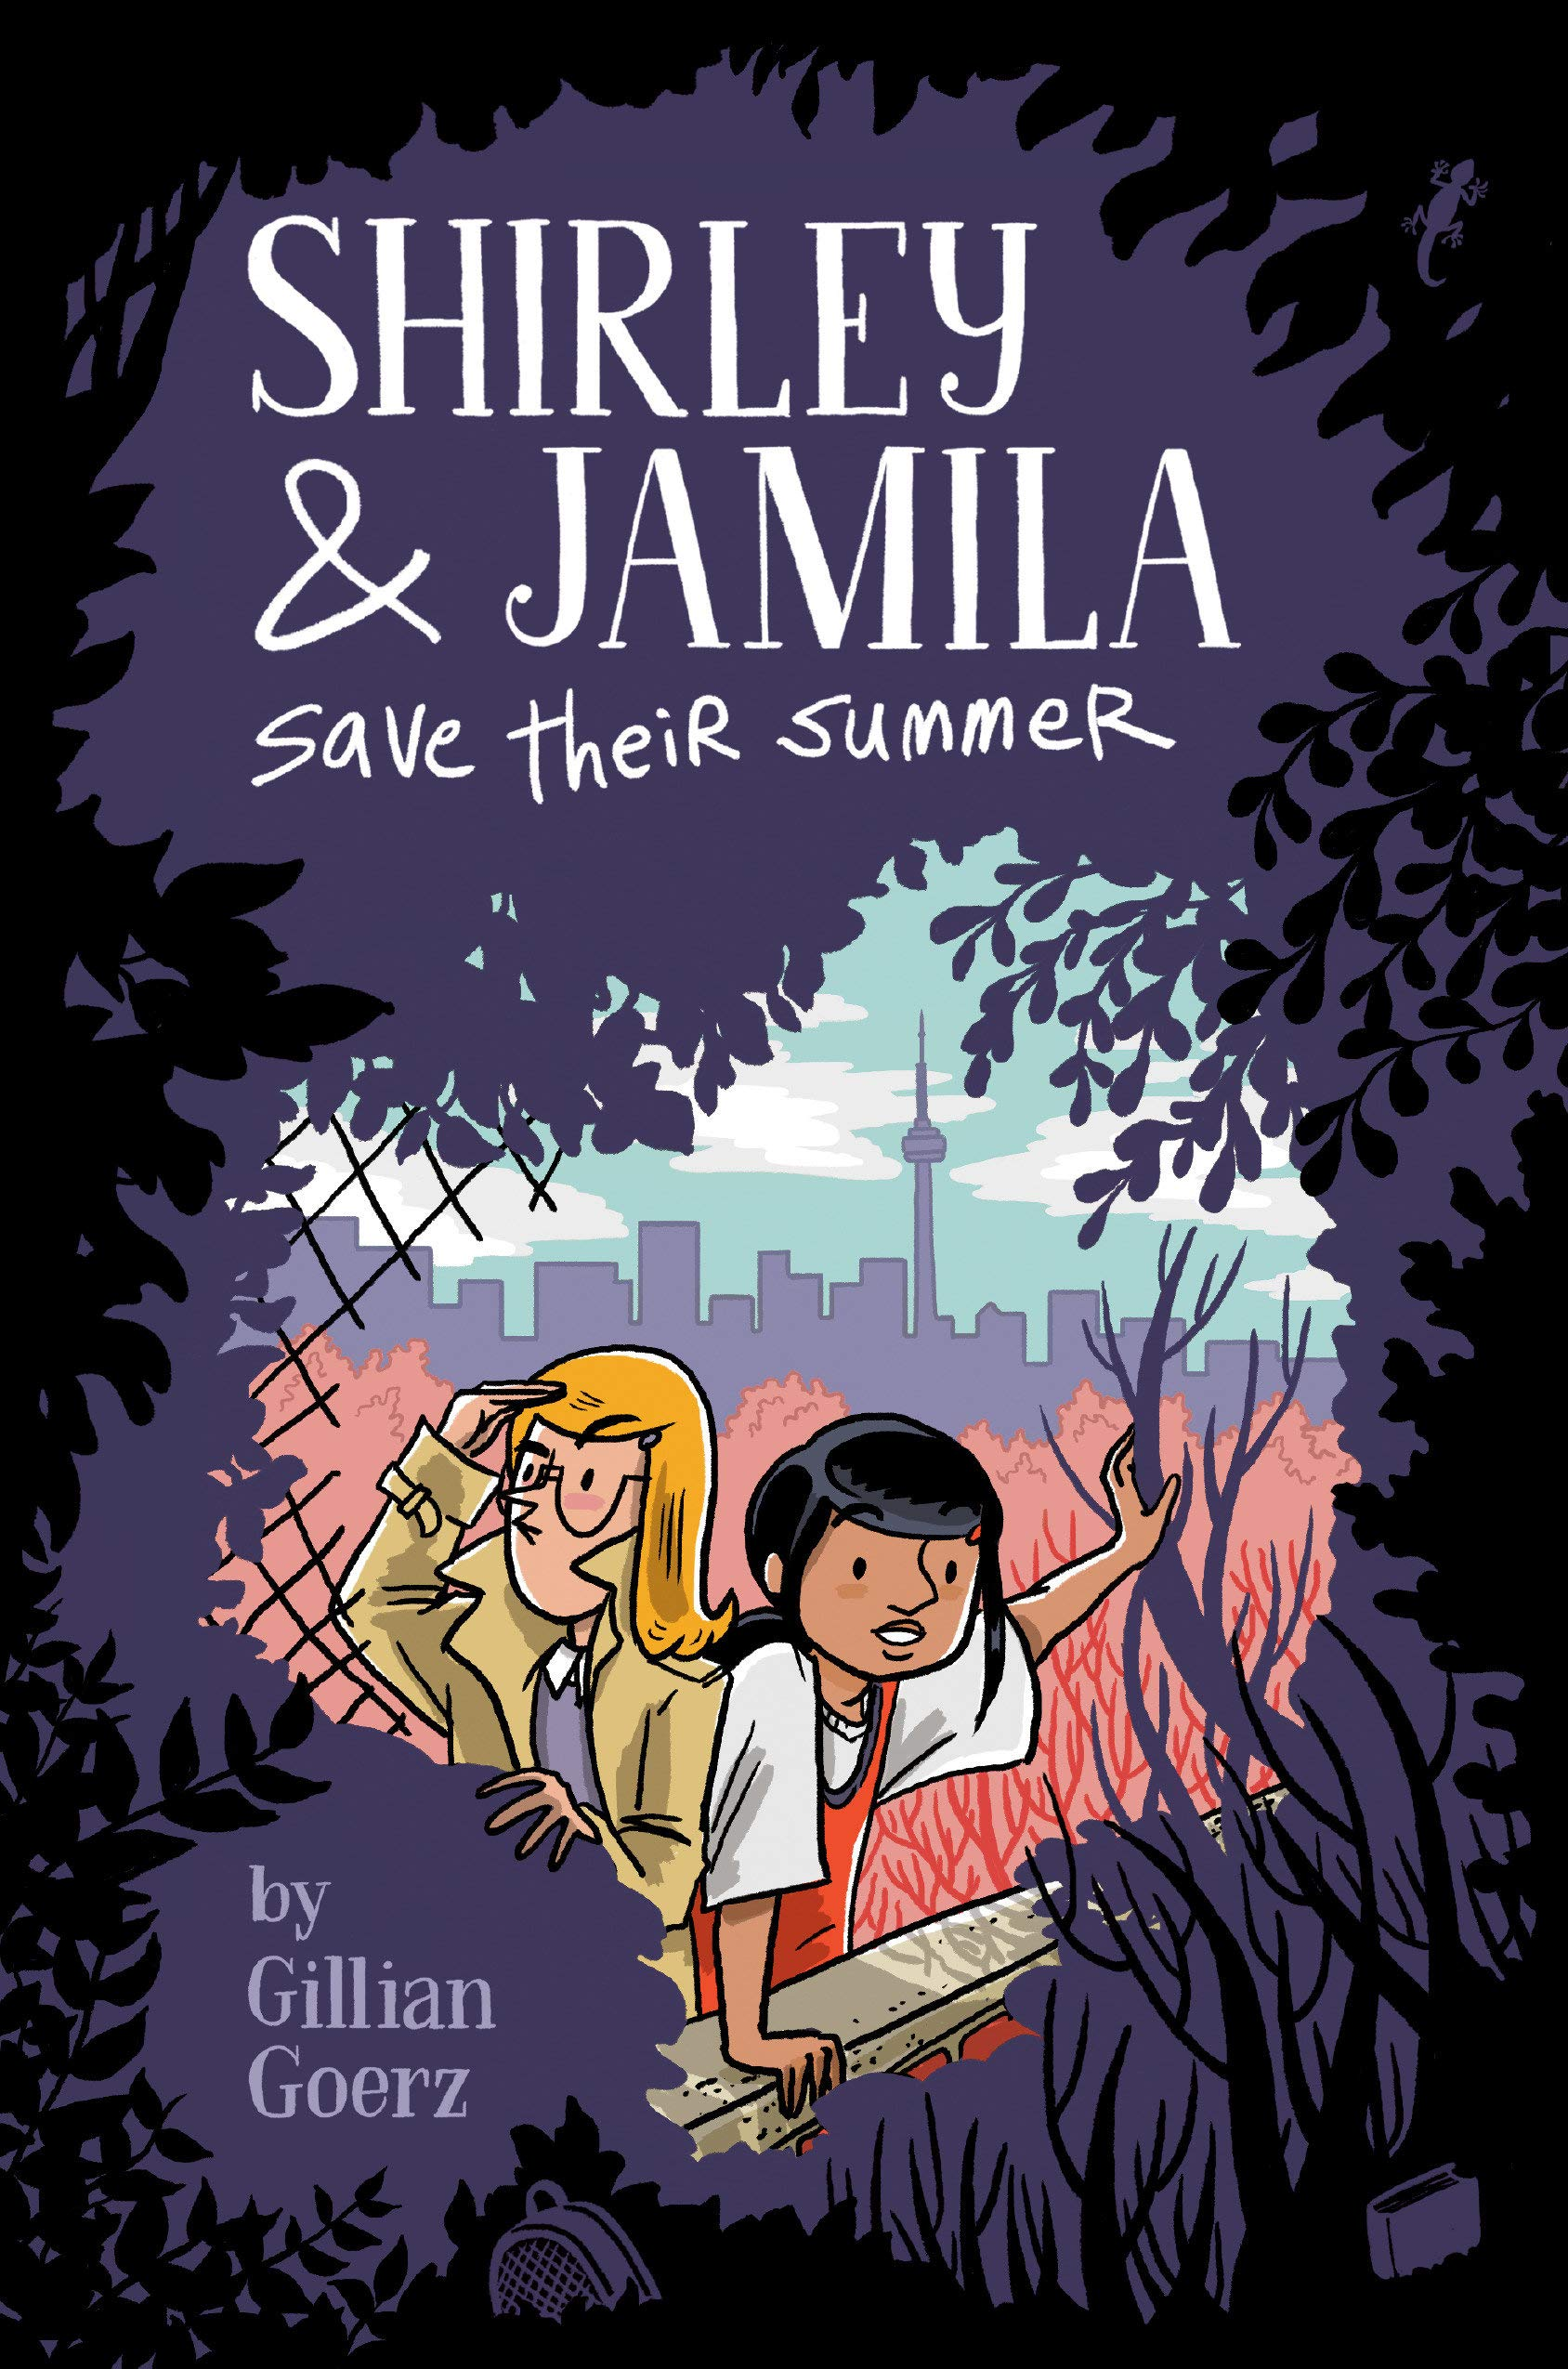 Shirley and Jamila Save Their Summer (Shirley & Jamila): Goerz, Gillian:  9780525552864: Amazon.com: Books